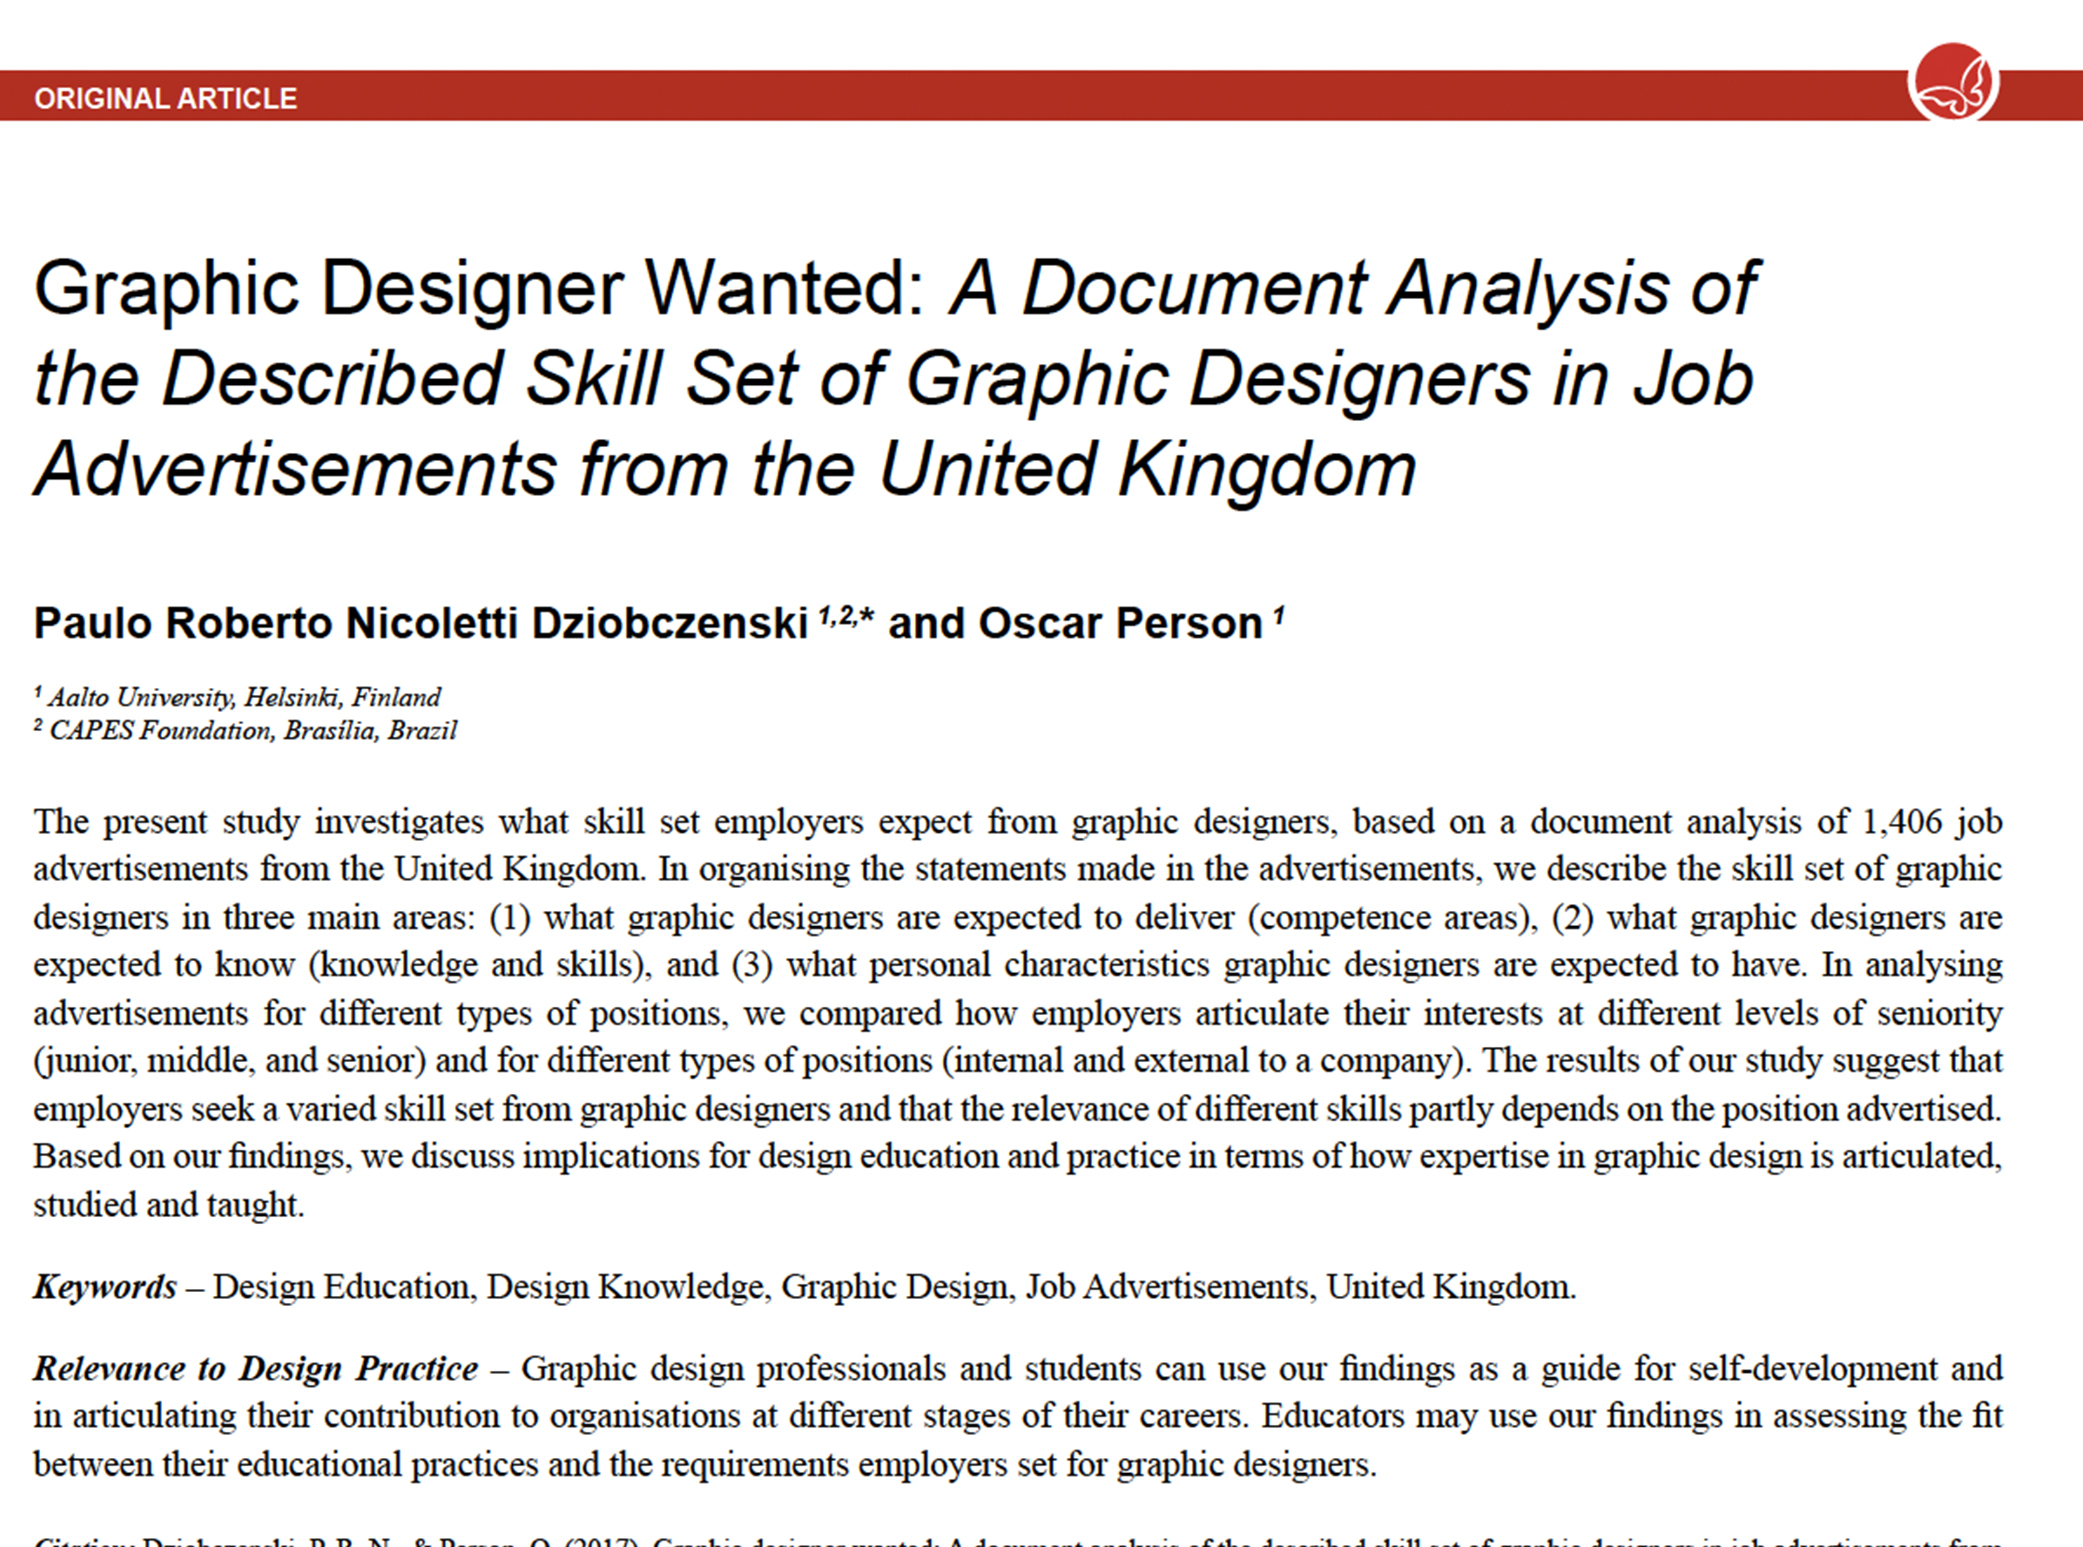 Graphic Designer Wanted: A Document Analysis of the Described Skill Set of Graphic Designers in Job Advertisements from the United Kingdom. Published in the International Journal of Design